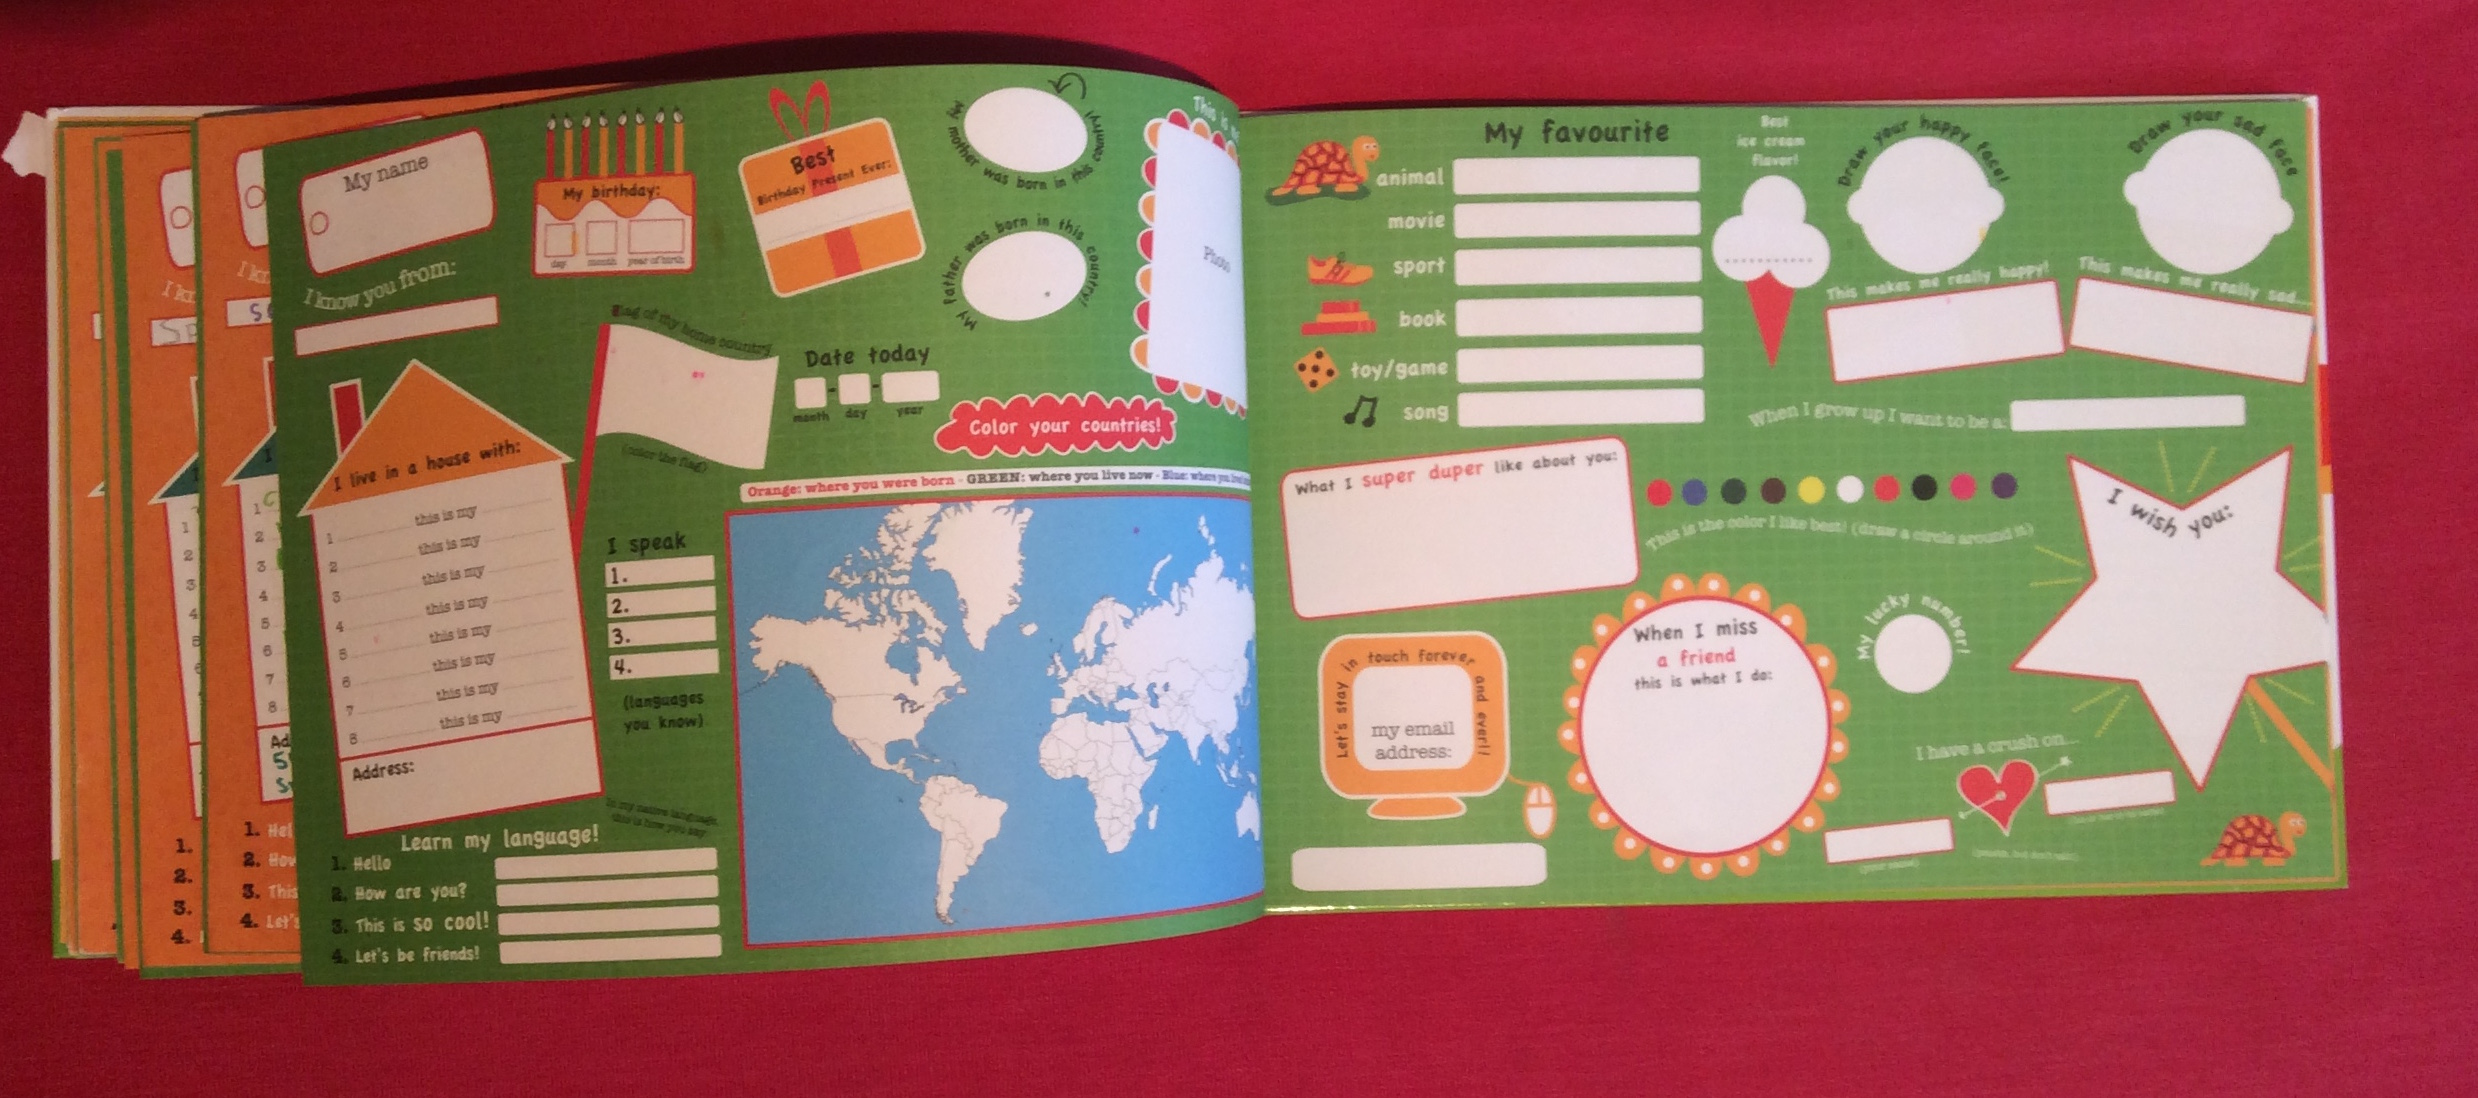 Might be Moving? Friendship Book for Kids on the Move